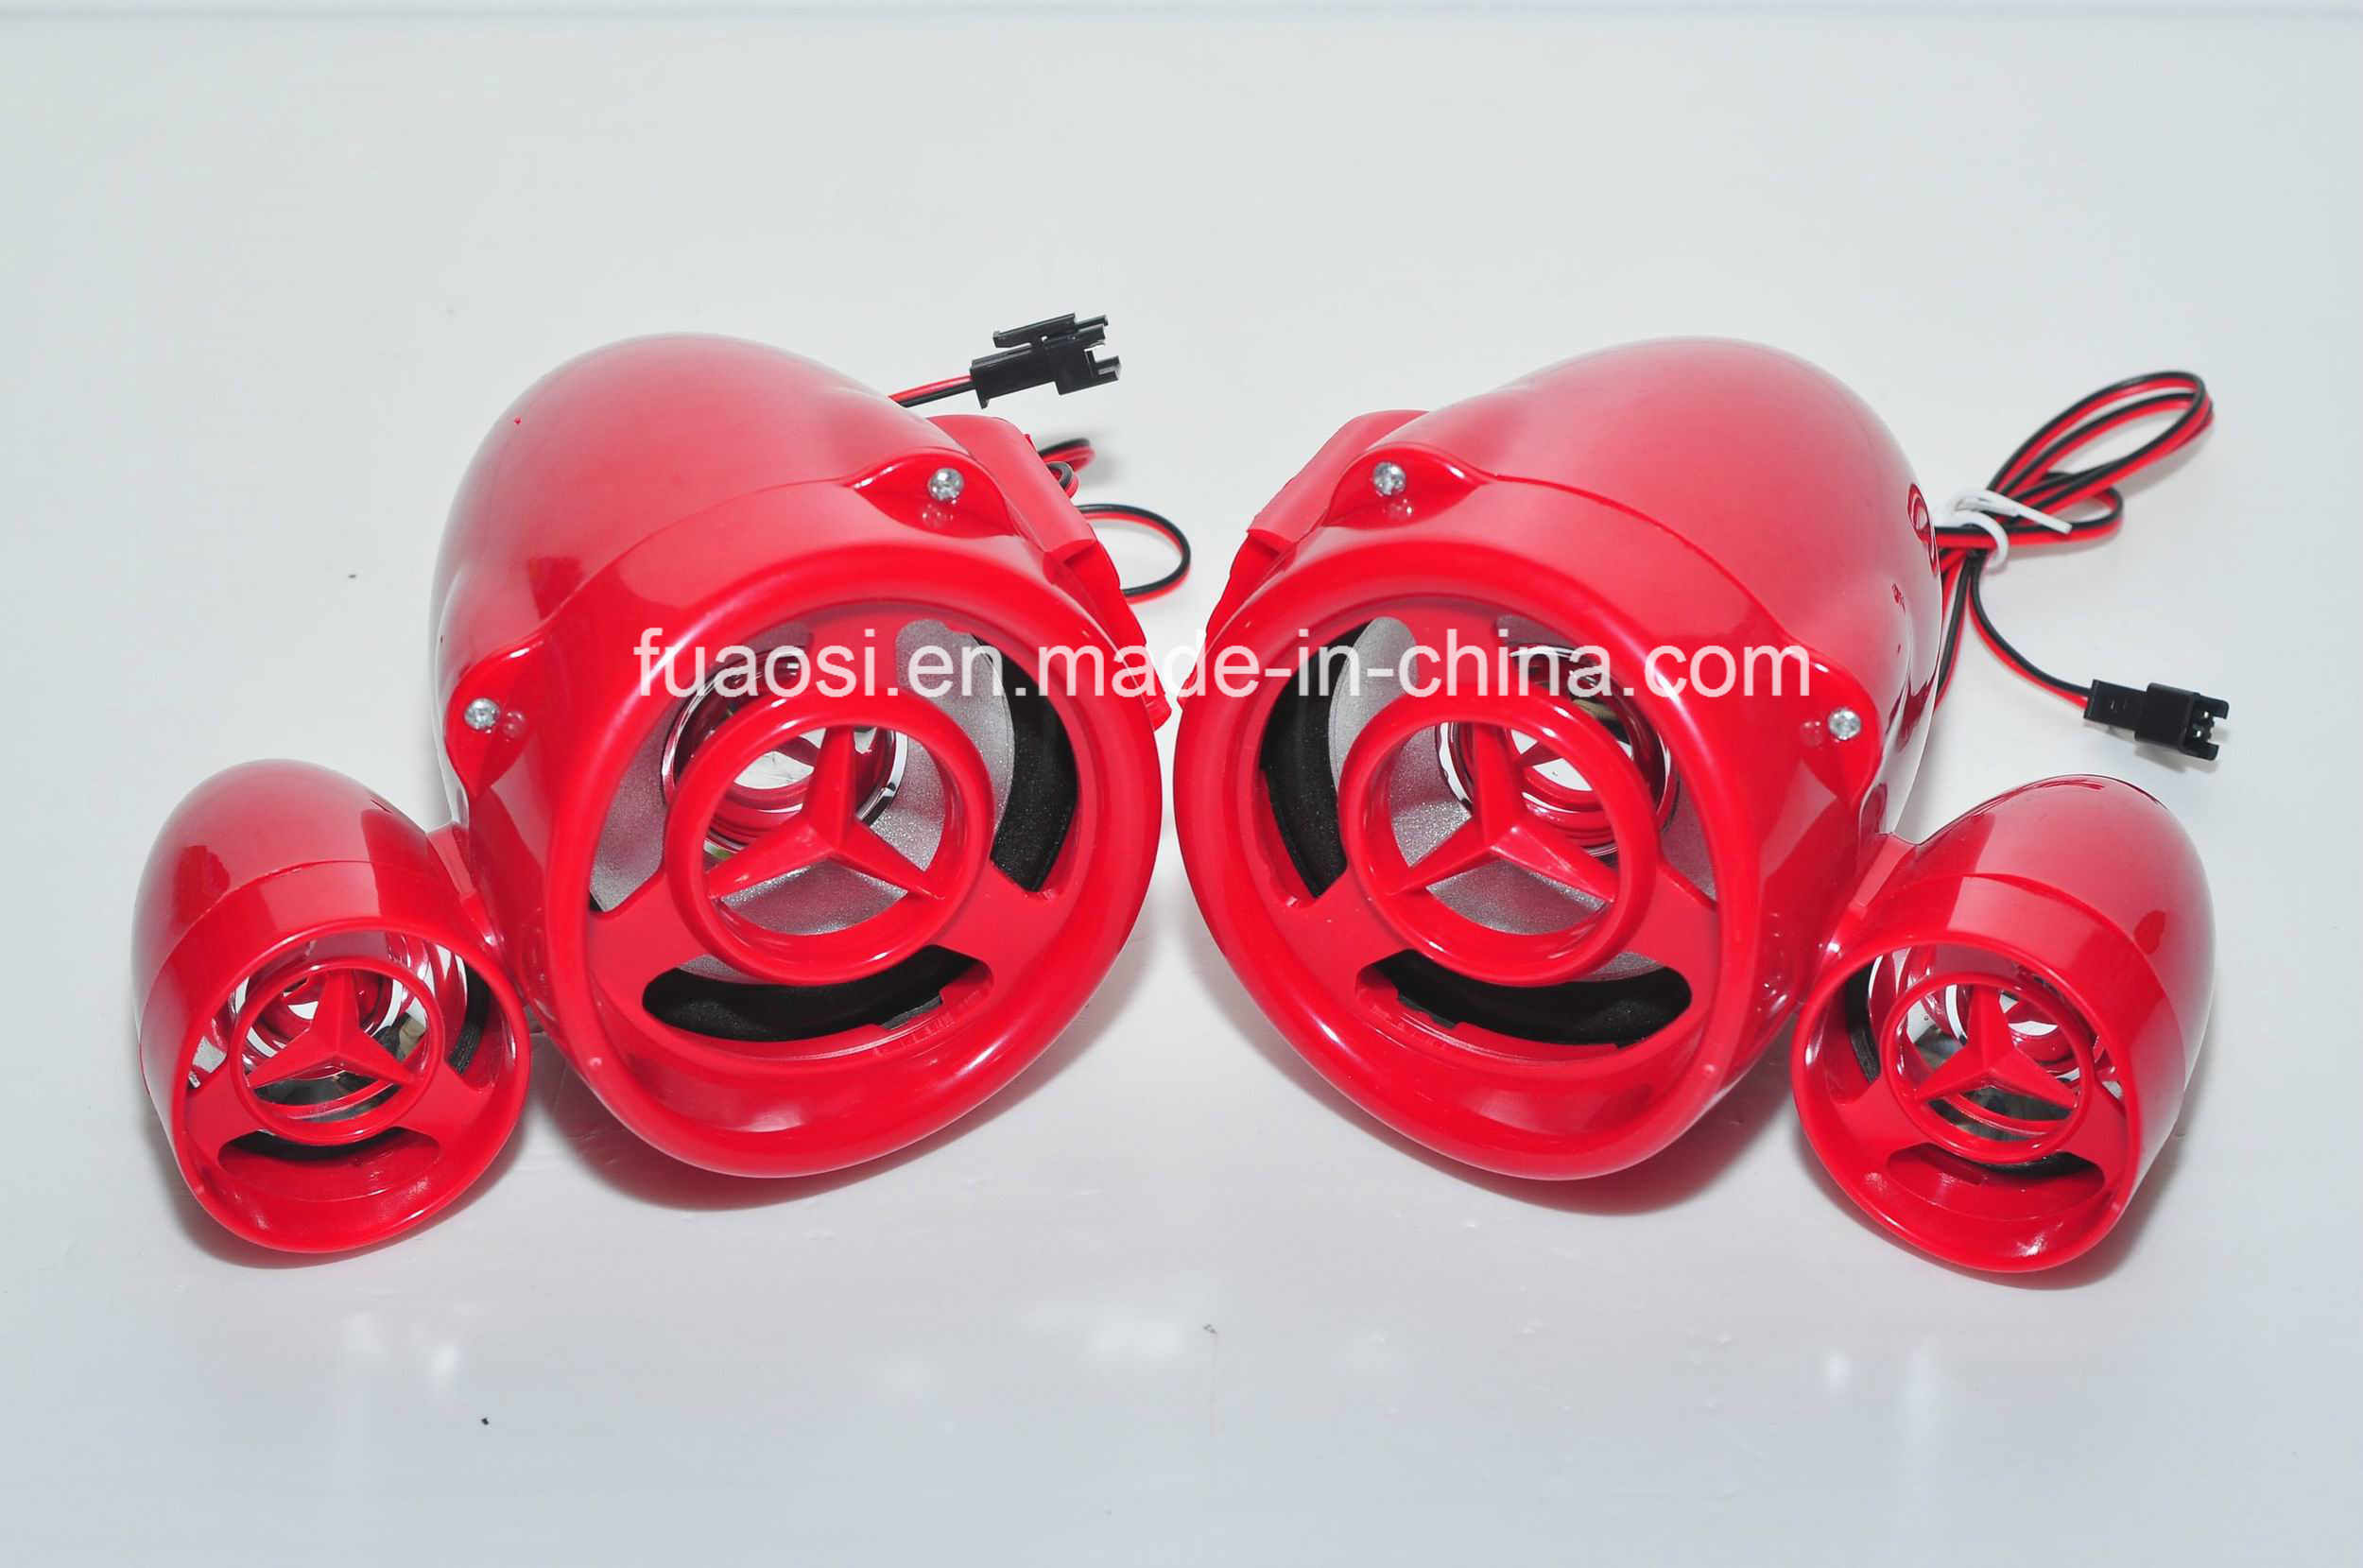 MP3 Audio Motorcycle Alarm System